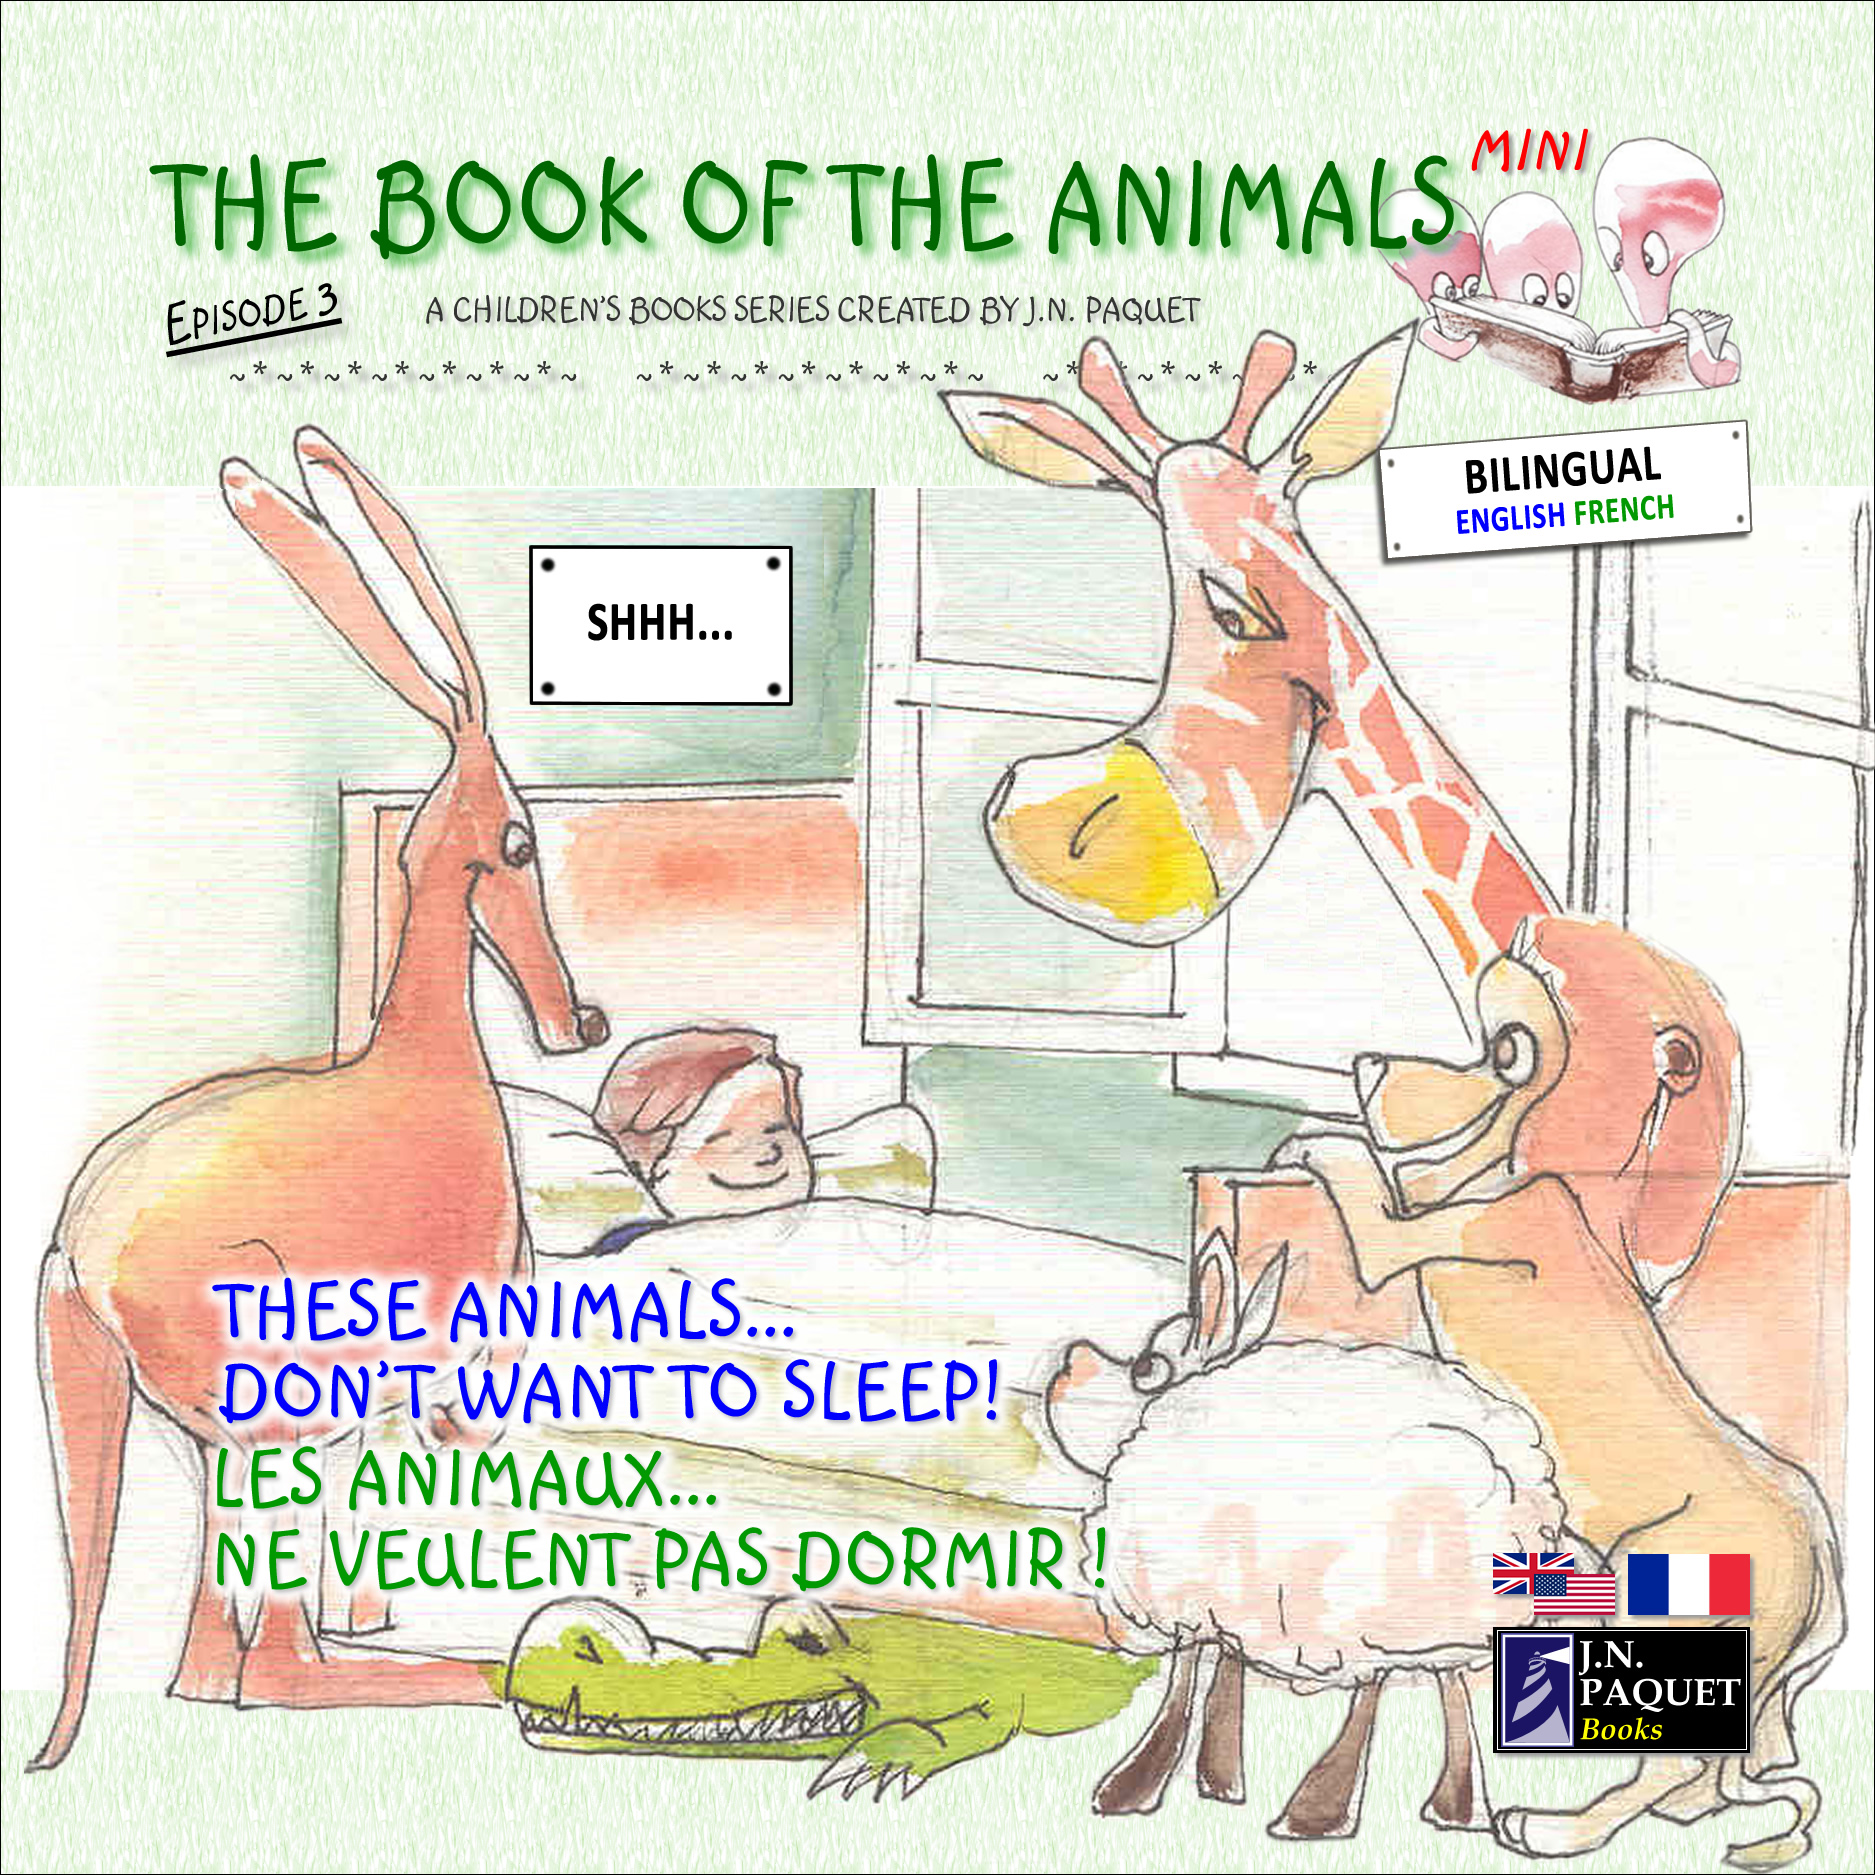 J.N. PAQUET - The Book of The Animals - Mini - Episode 3 (Bilingual English-French)